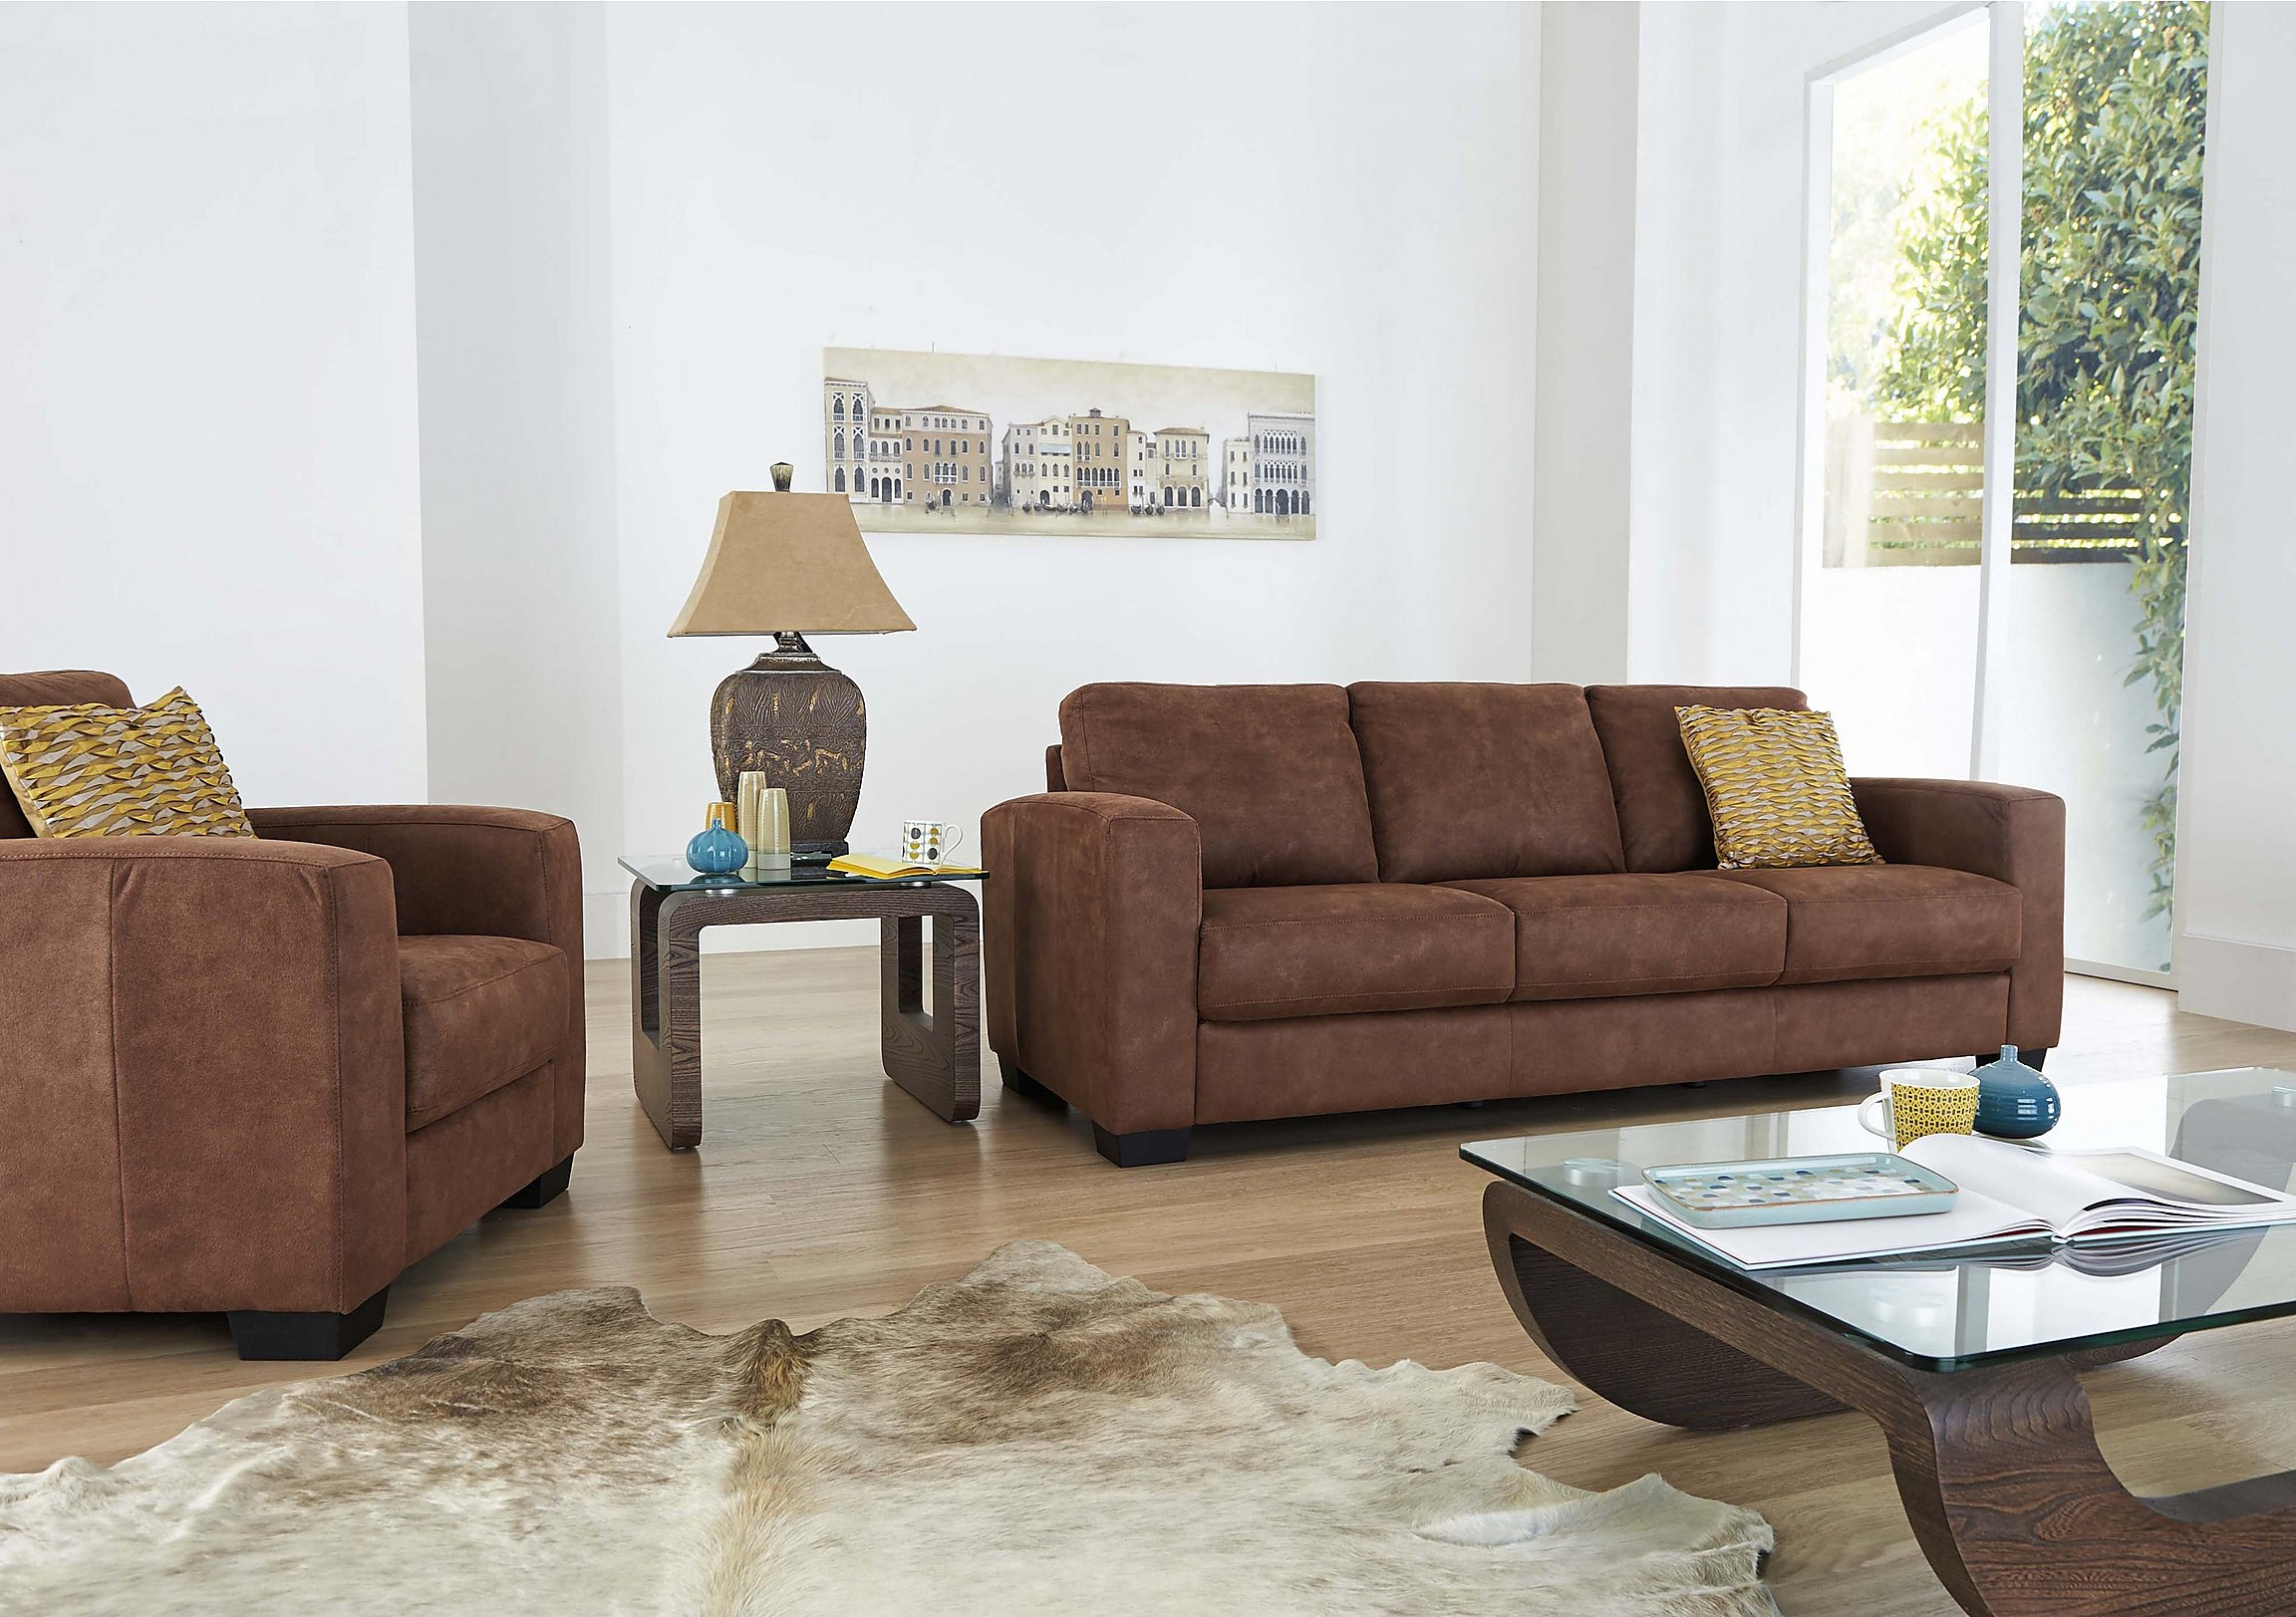 furniture village dante sofa reviews. Black Bedroom Furniture Sets. Home Design Ideas